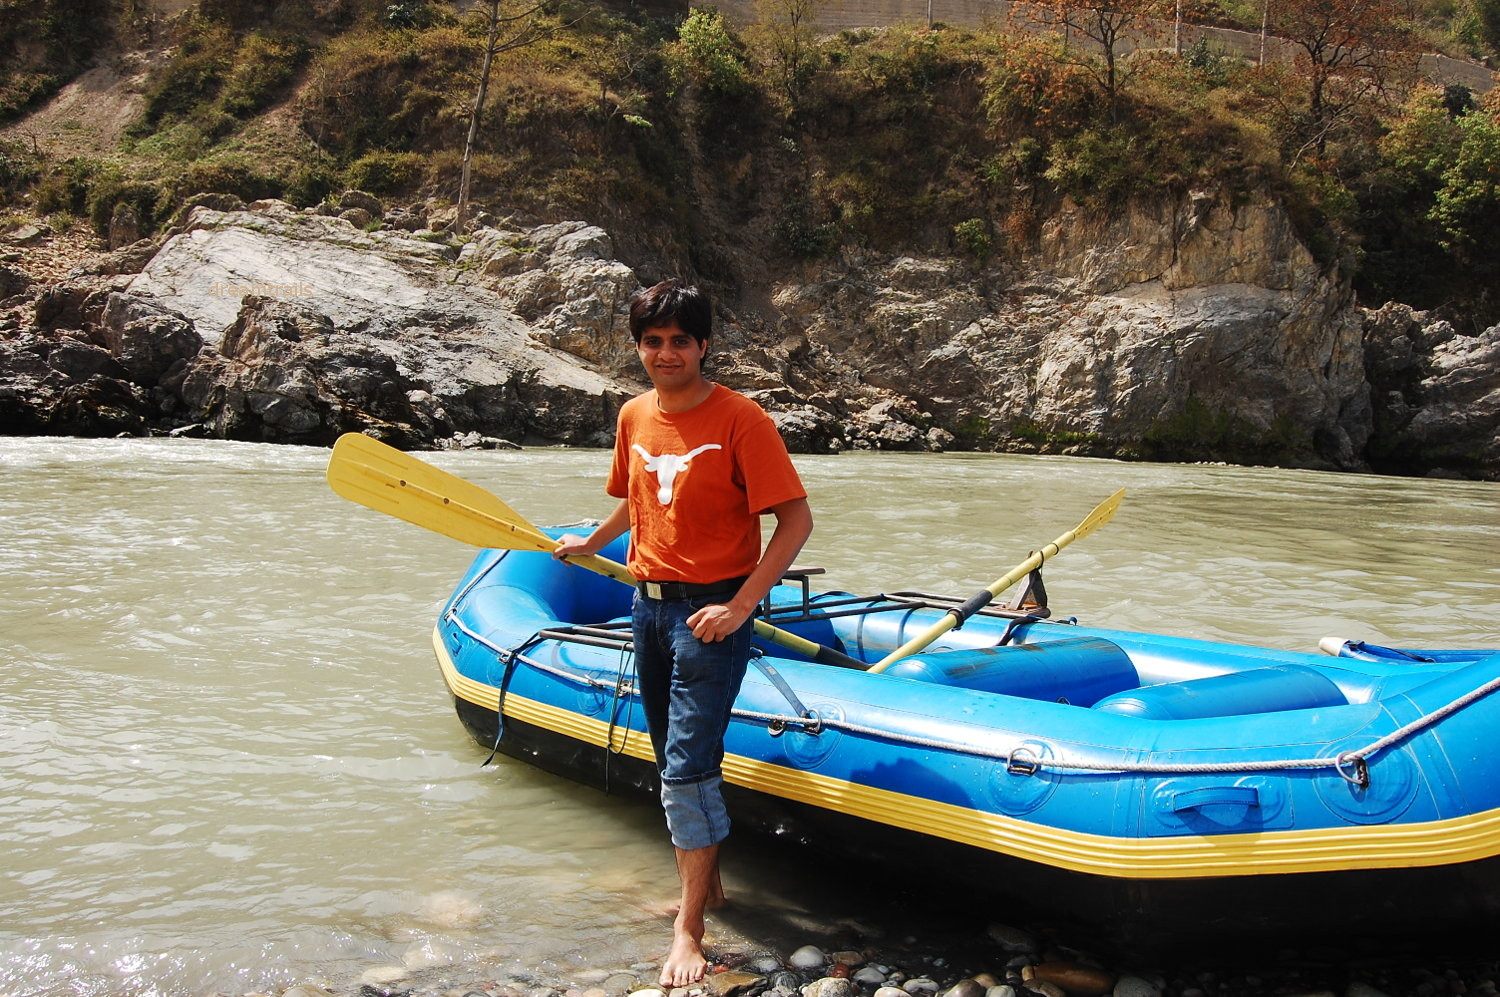 Water Rafting on River Sutlej, Tatta Pani / Tattapani